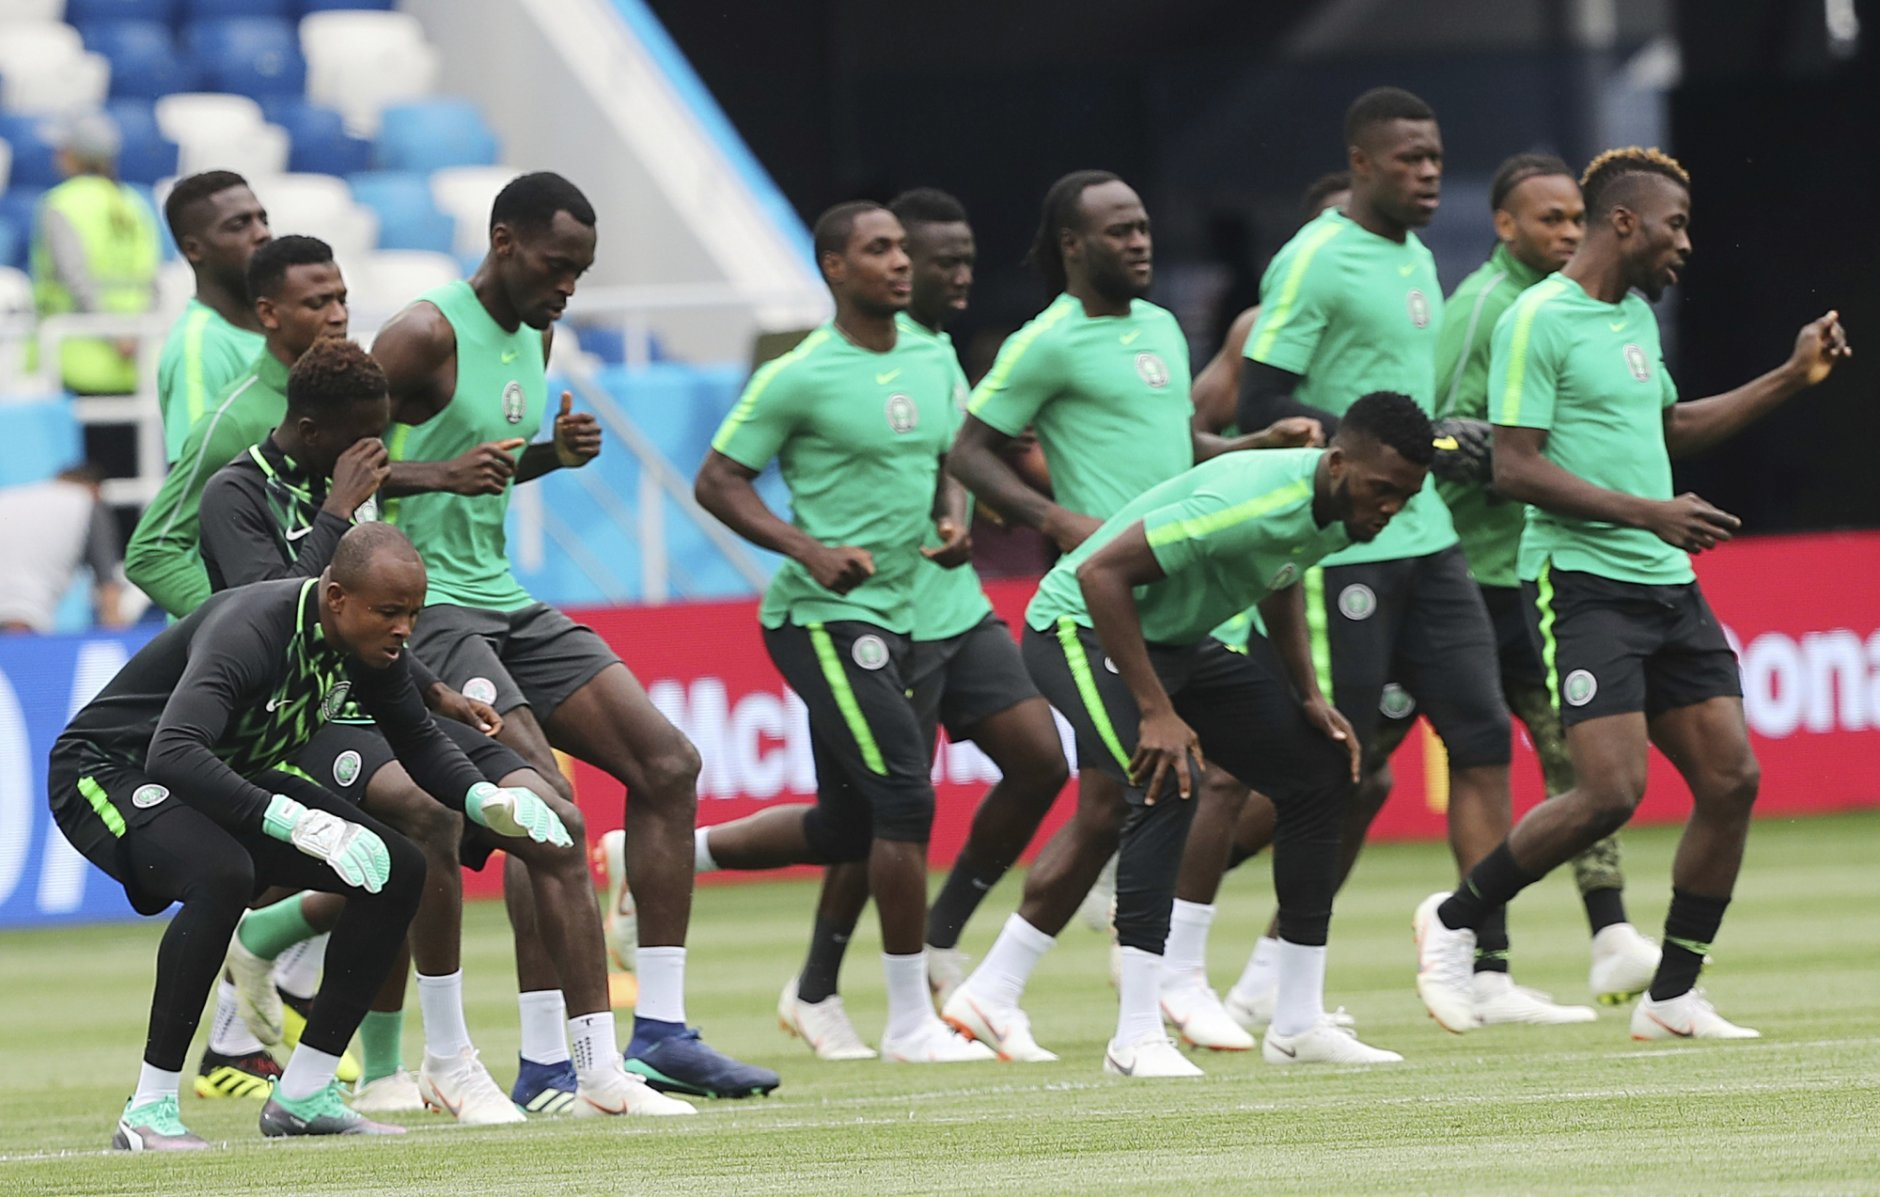 Players warm up during Nigeria's official training on the eve of the group D match between Croatia and Nigeria at the 2018 soccer World Cup in the Kaliningrad Stadium in Kaliningrad, Russia, Friday, June 15, 2018. (AP Photo/Czarek Sokowski)